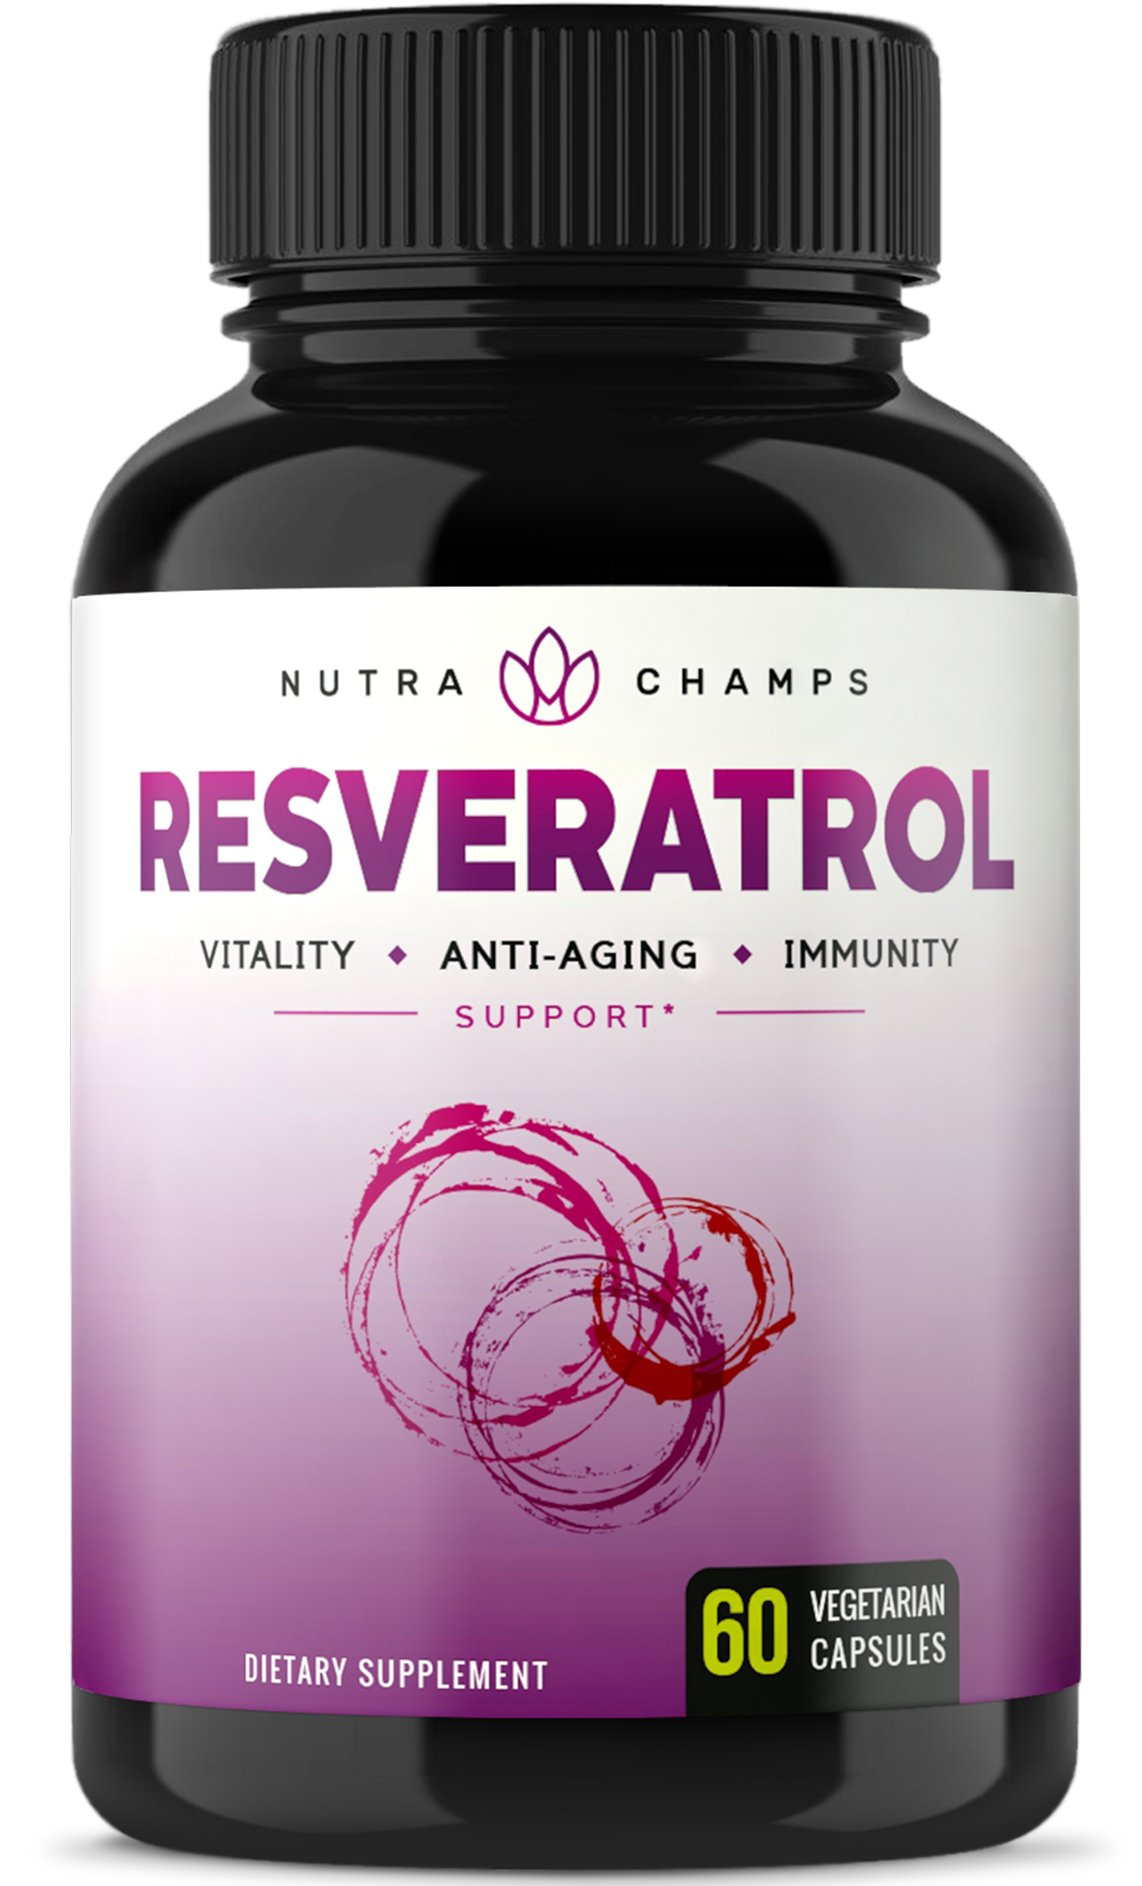 Resveratrol Supplement 1400mg - Extra Strength Formula for Maximum Anti Aging, Immune & Heart Health - 60 Vegan Capsules with Trans-Resveratrol, Green Tea Leaf, Acai Berry & Grape Seed Extract